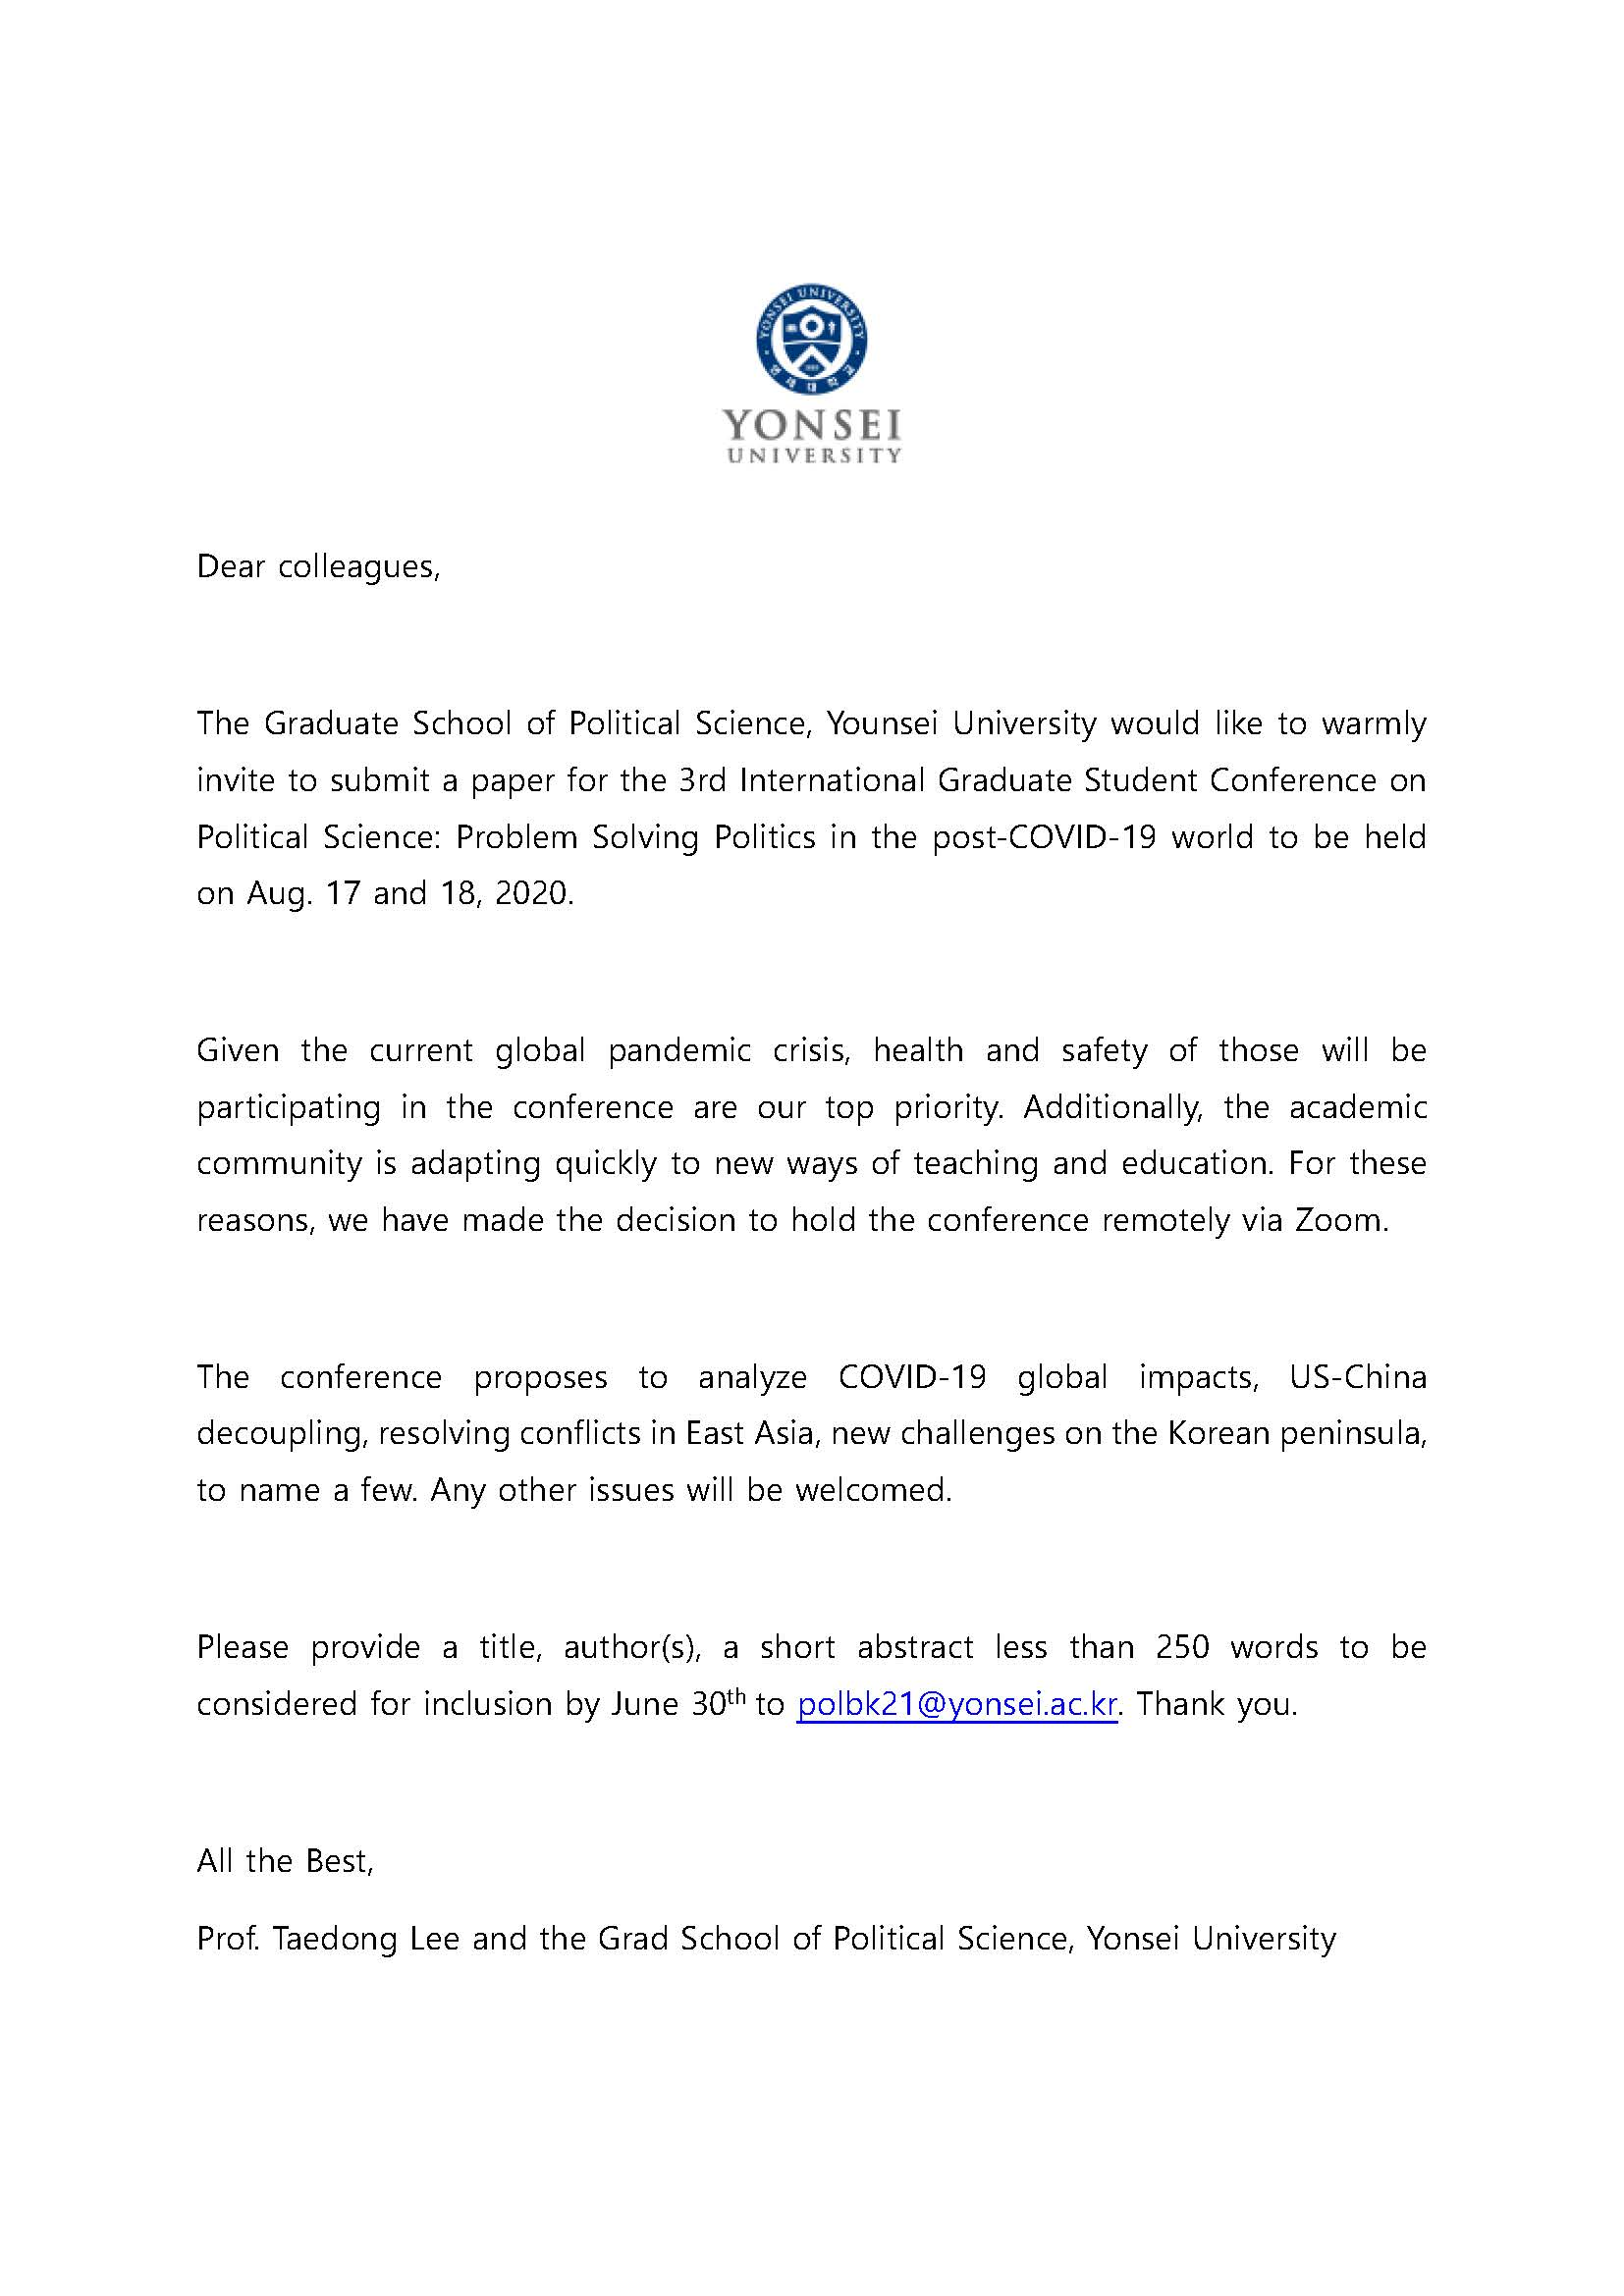 Yonsei Univ. invites grad students to apply for the 3rd inte rnational graduate students conference (Webinar)